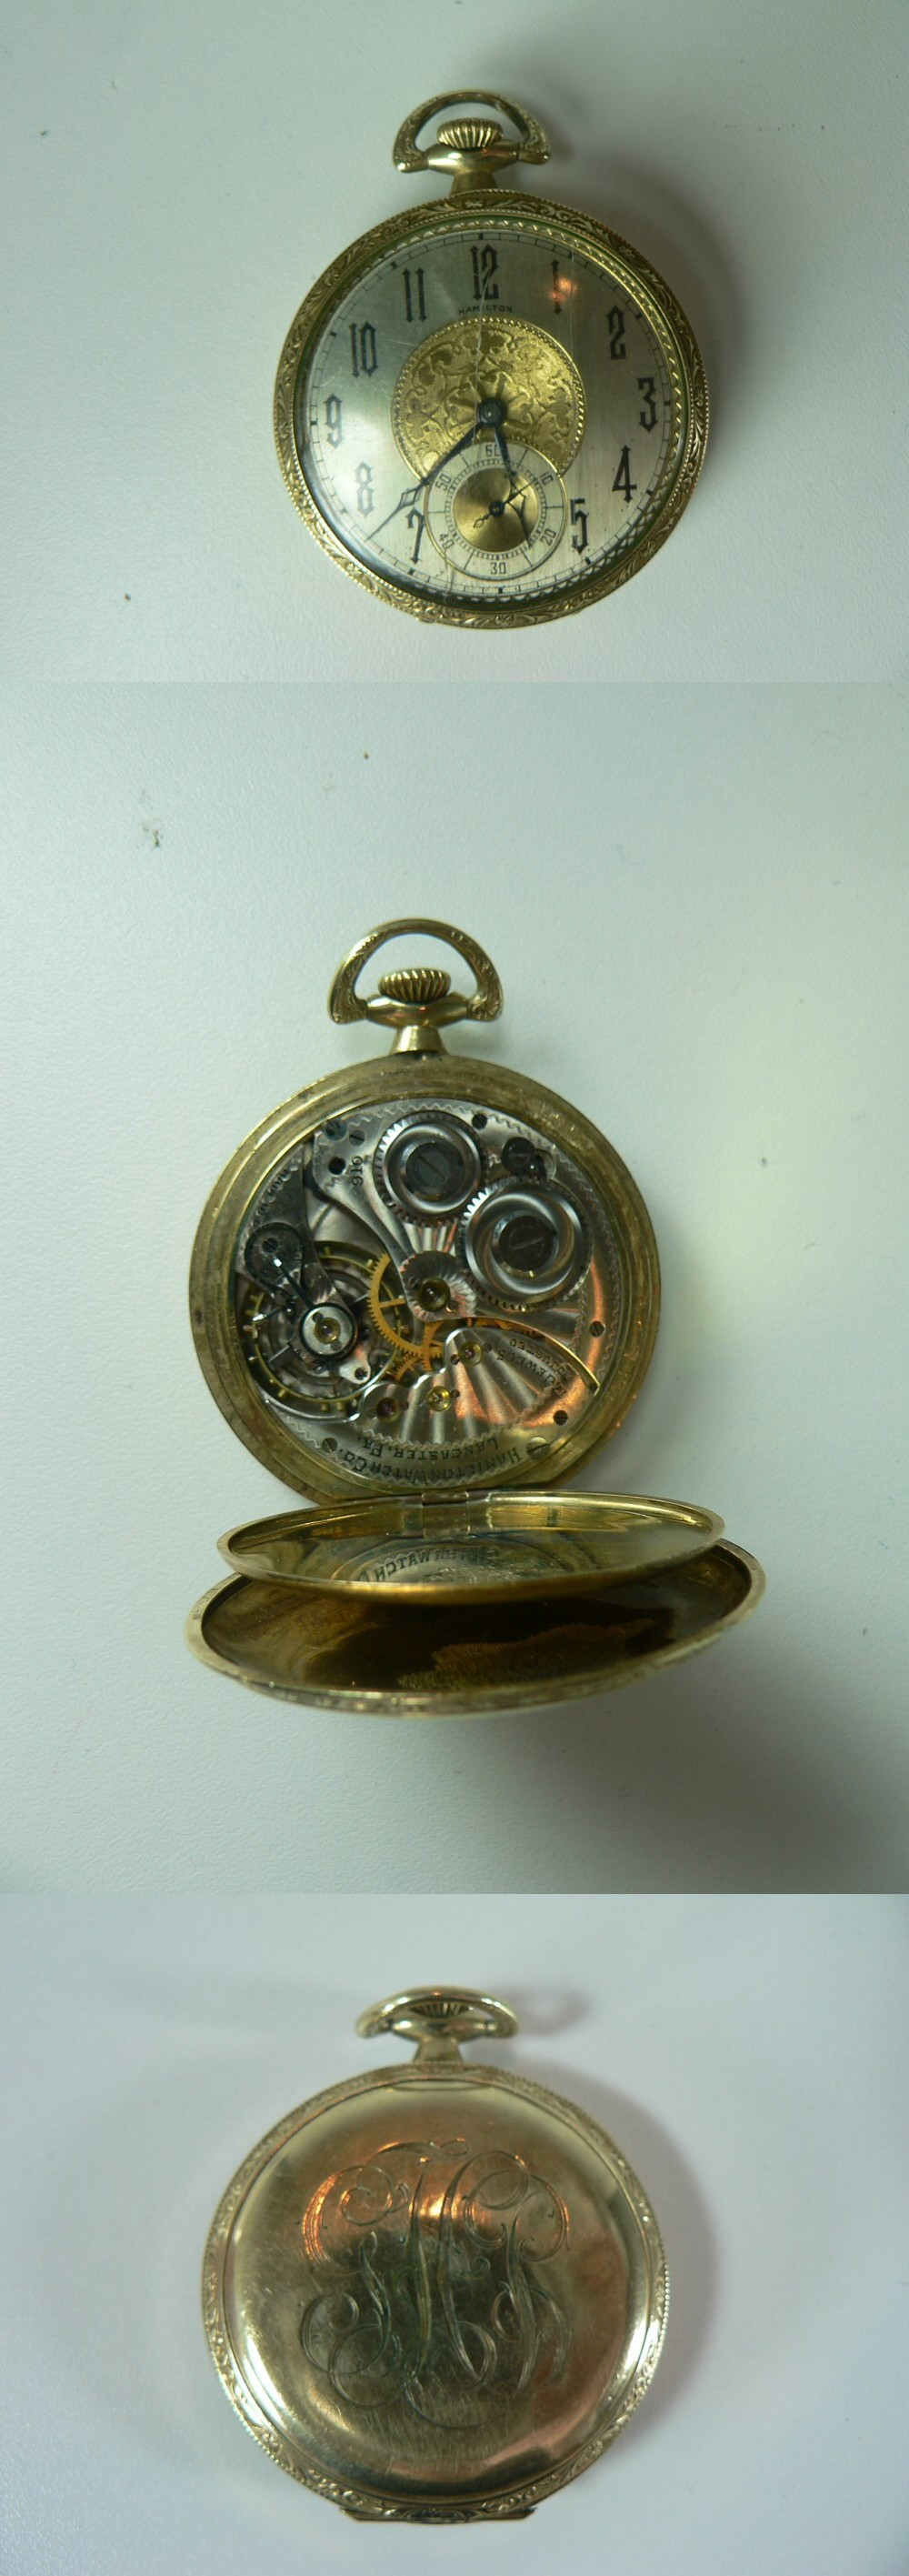 VINTAGE HAMILTON 17 JEWELS GOLD FILLED POCKET WATCH photo